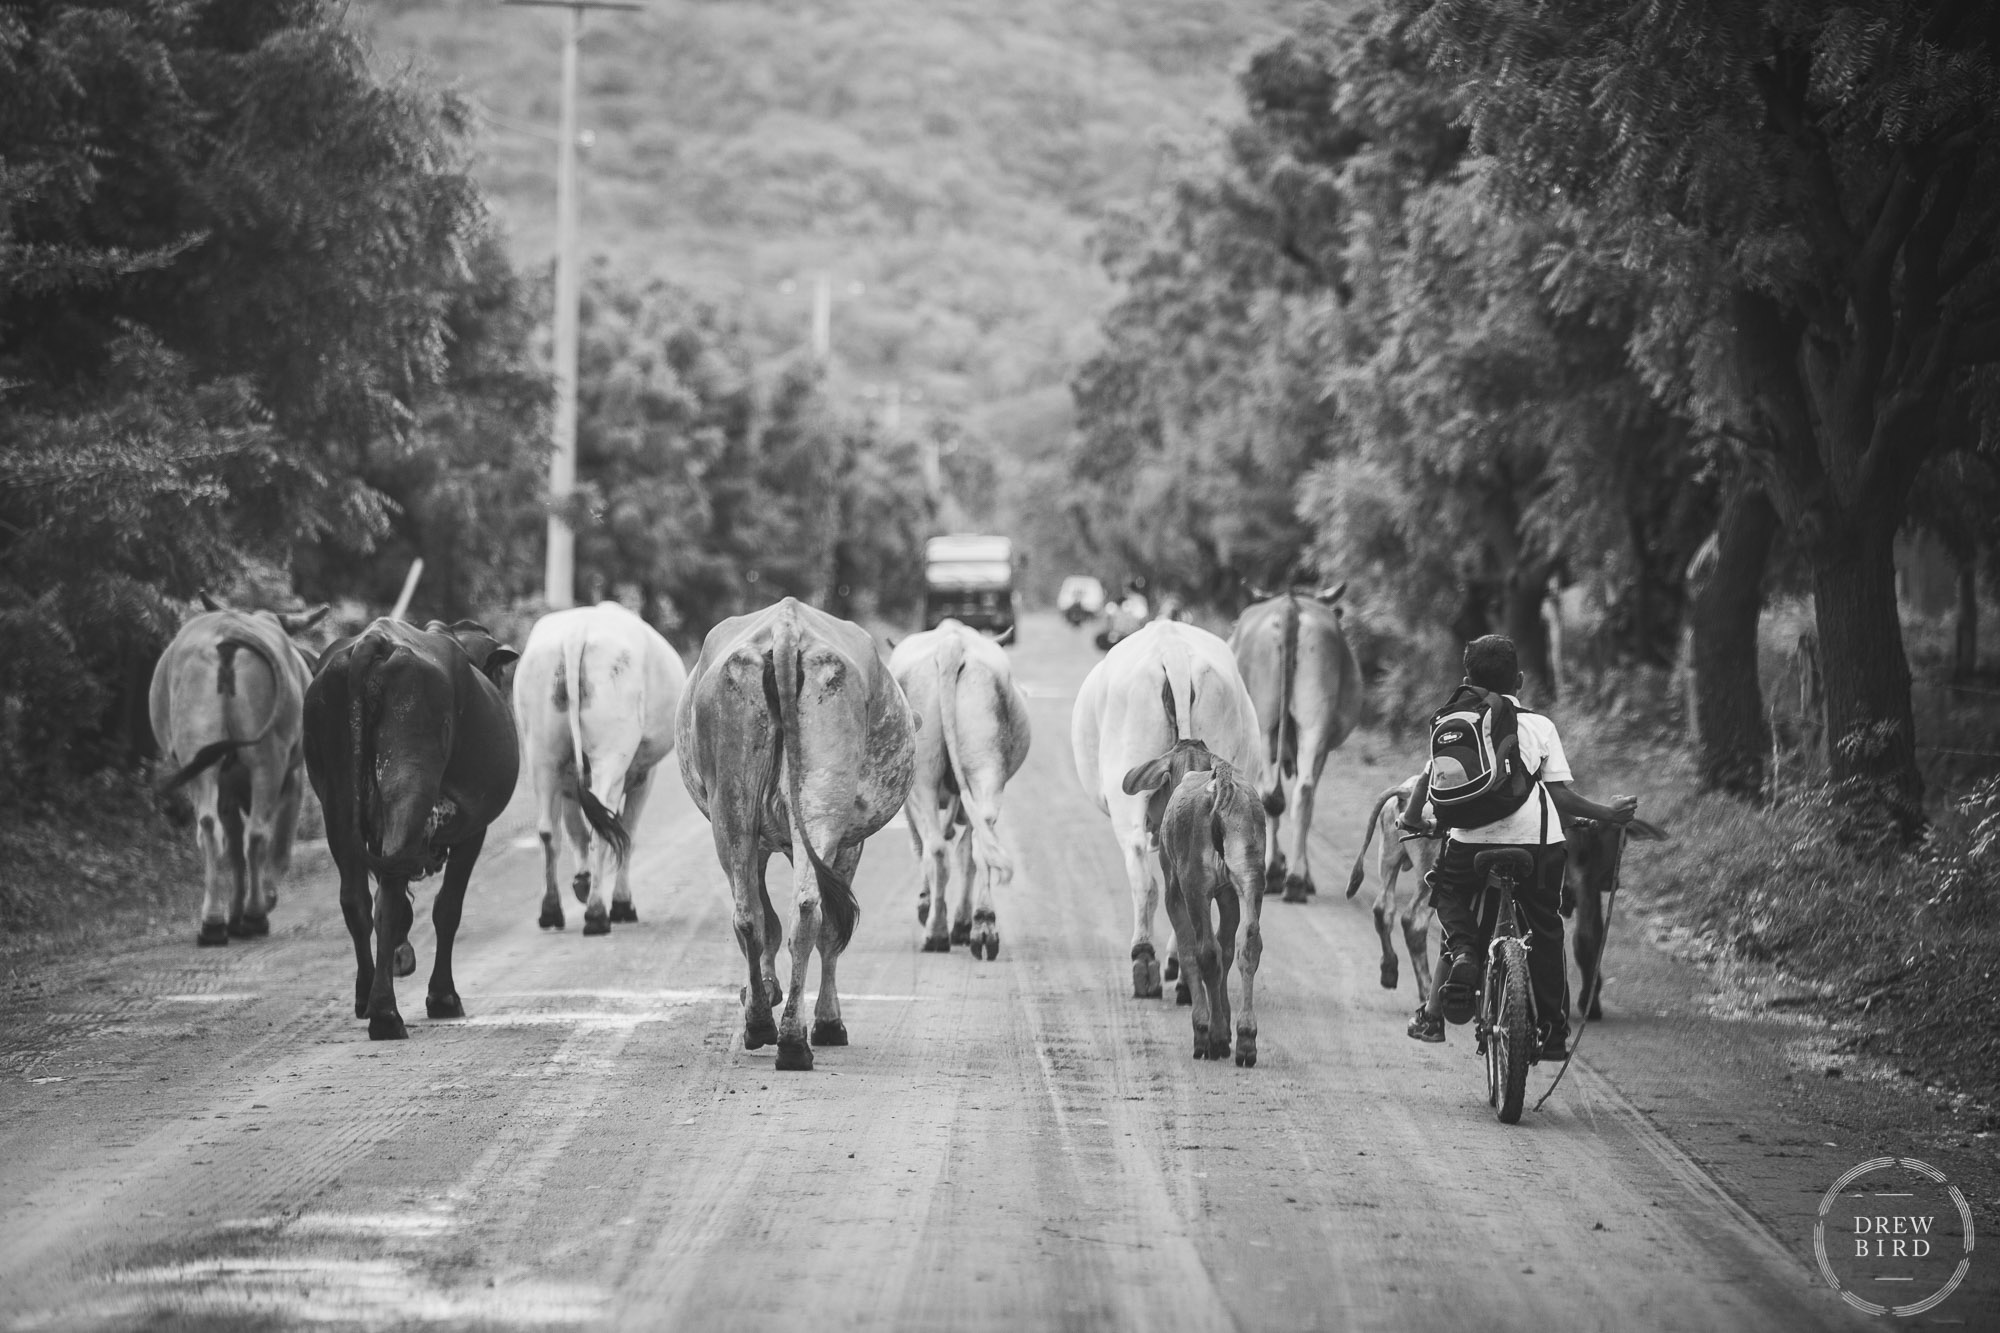 Young boy on bicycle with stick herding a group of cows on a muddy road near Popoyo, Nicaragua. Rancho Santana Nicaragua destination wedding photographer Drew Bird.